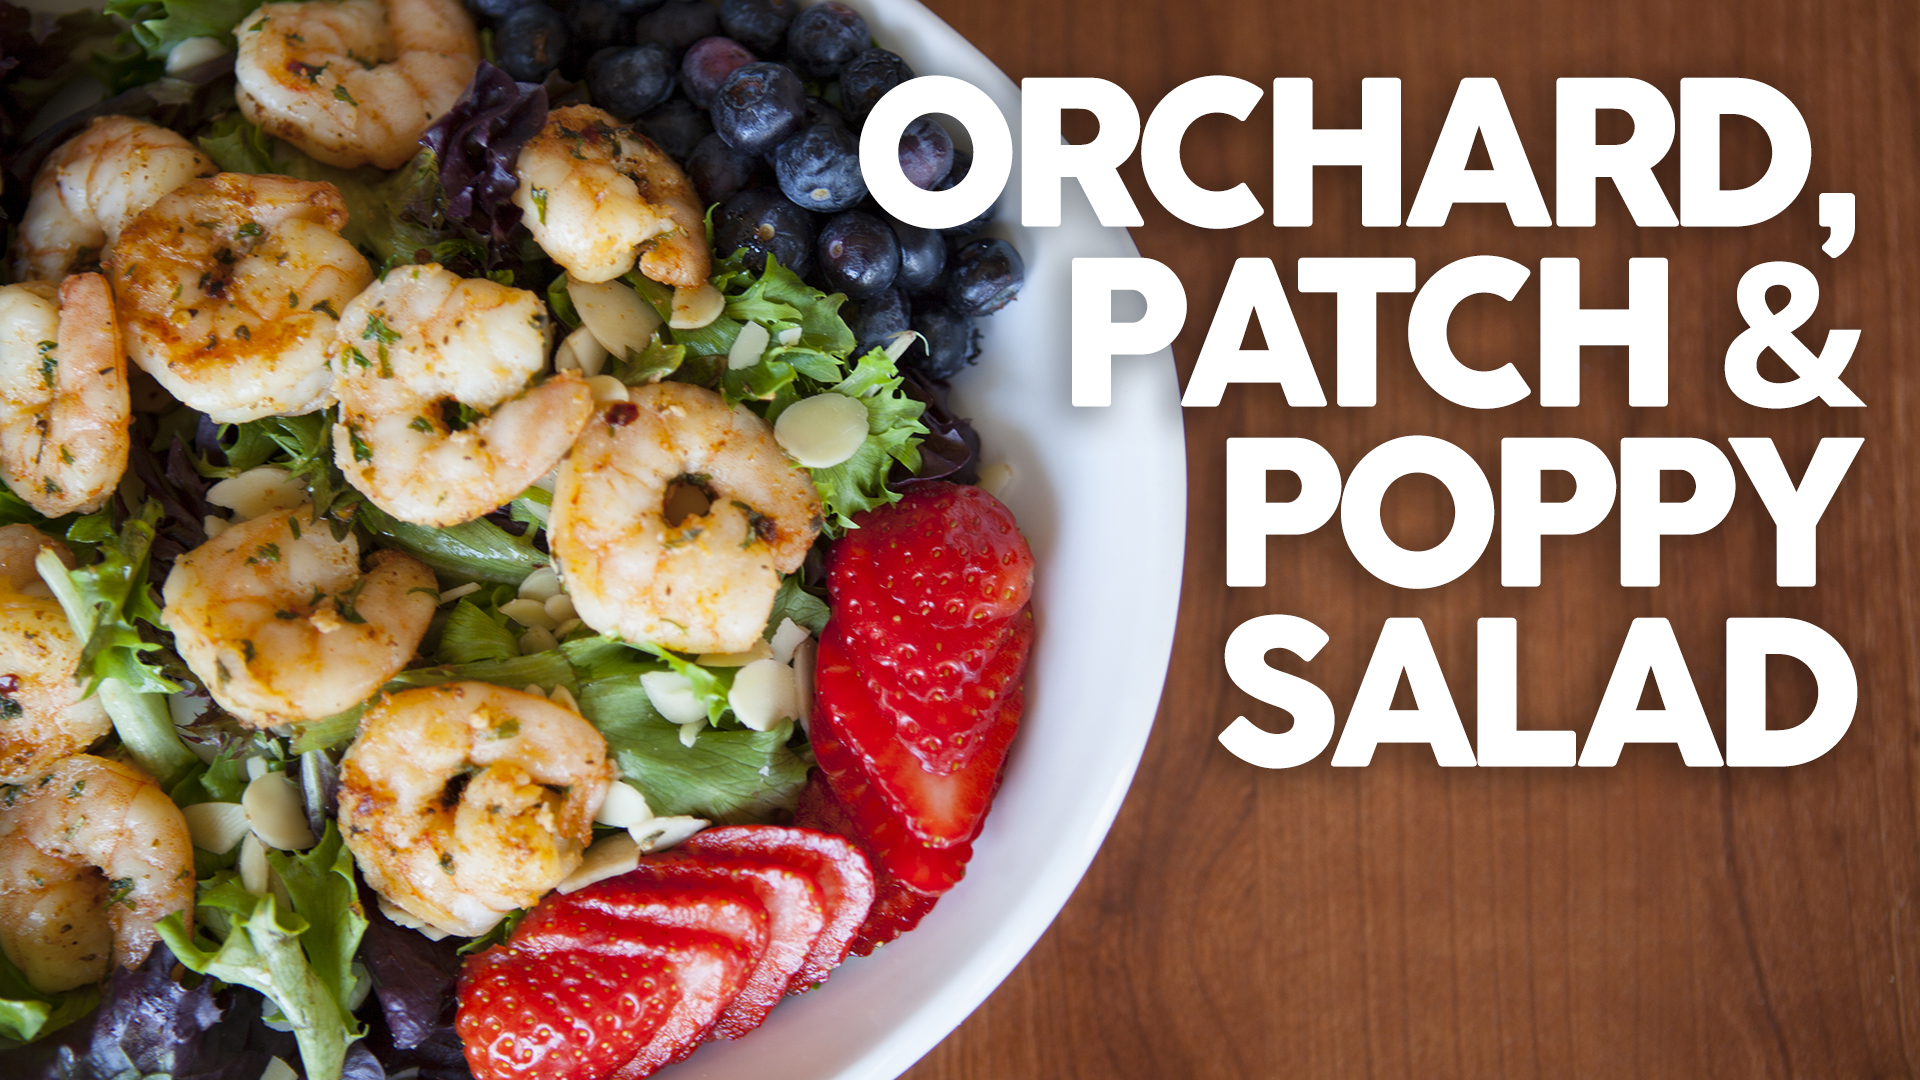 orchard-patch-poppy-salad